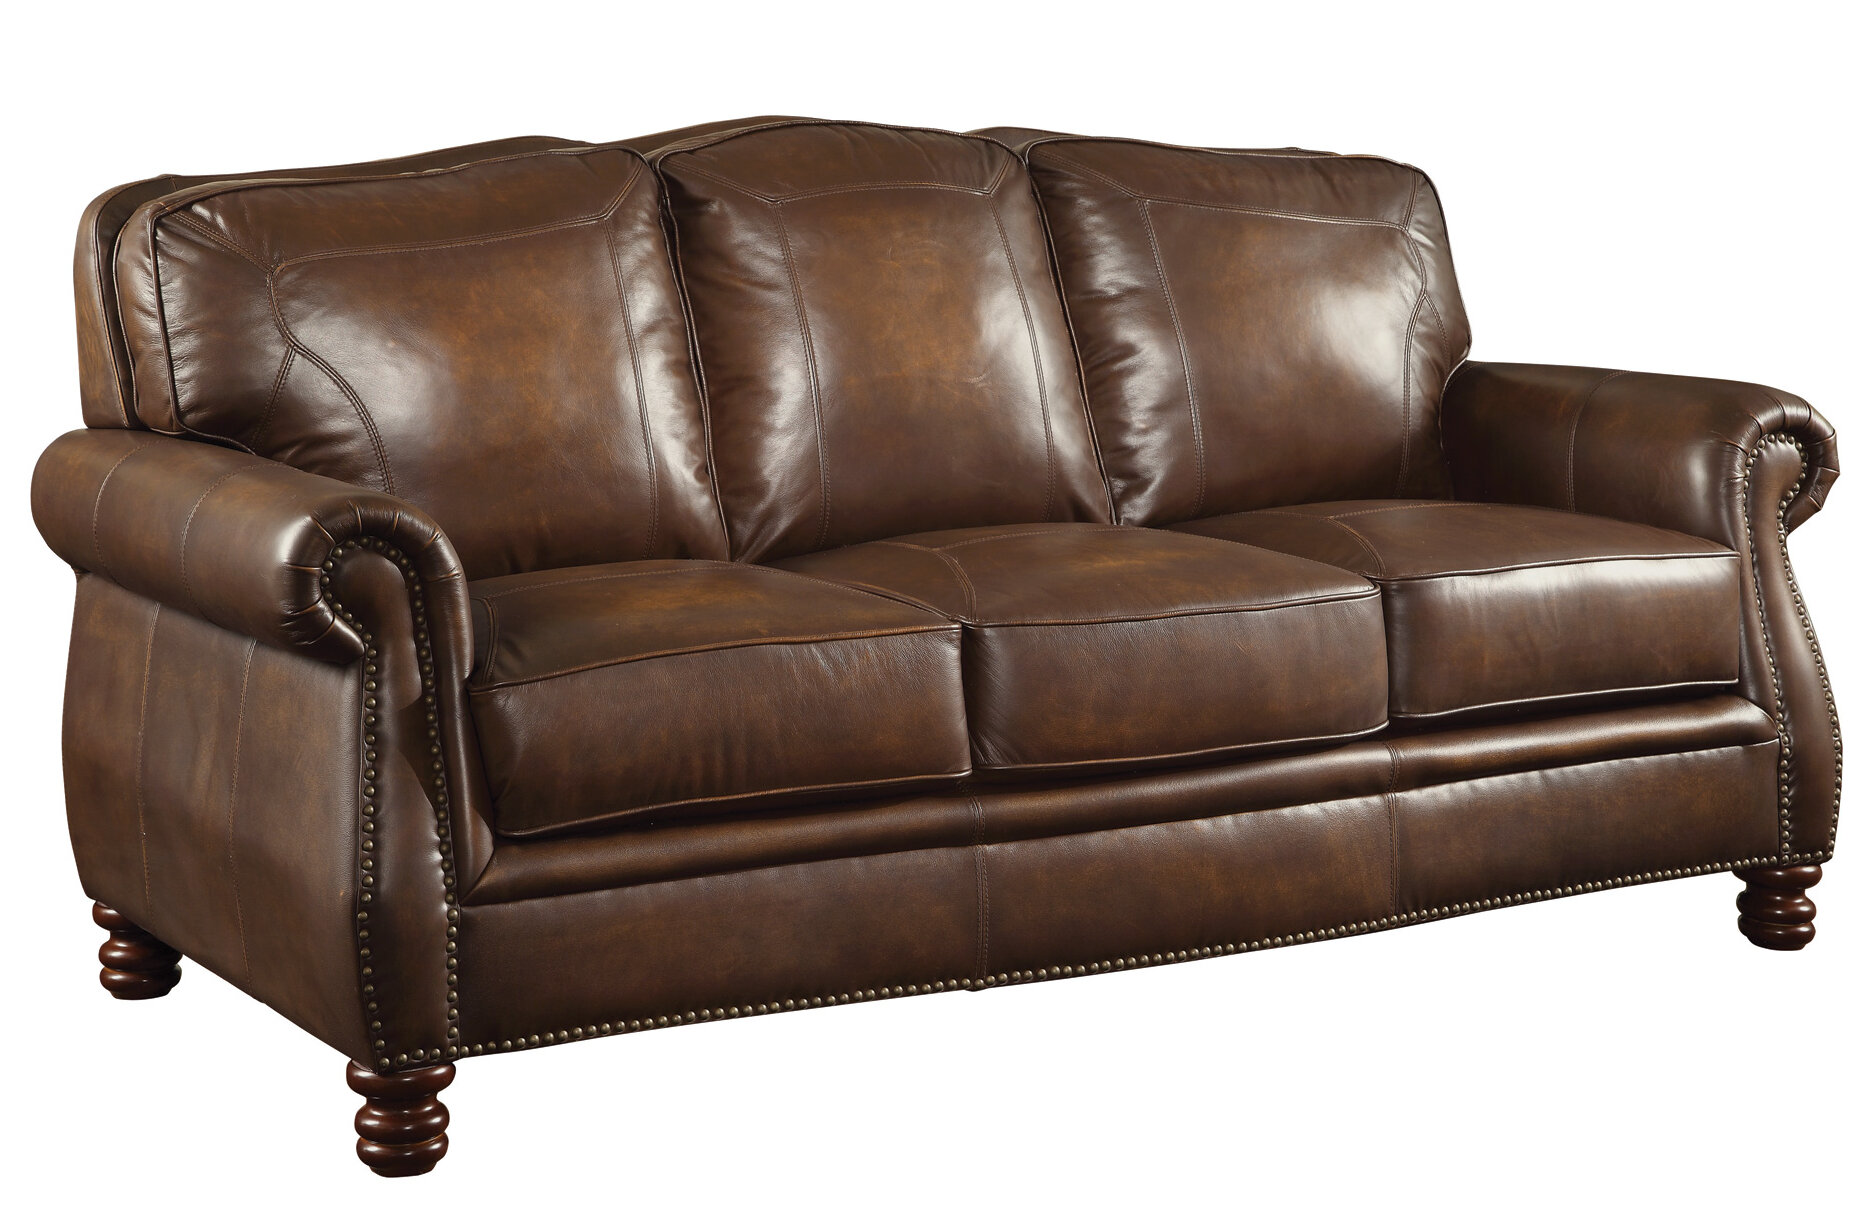 Darby Home Co Linglestown Leather Sofa Reviews Wayfair